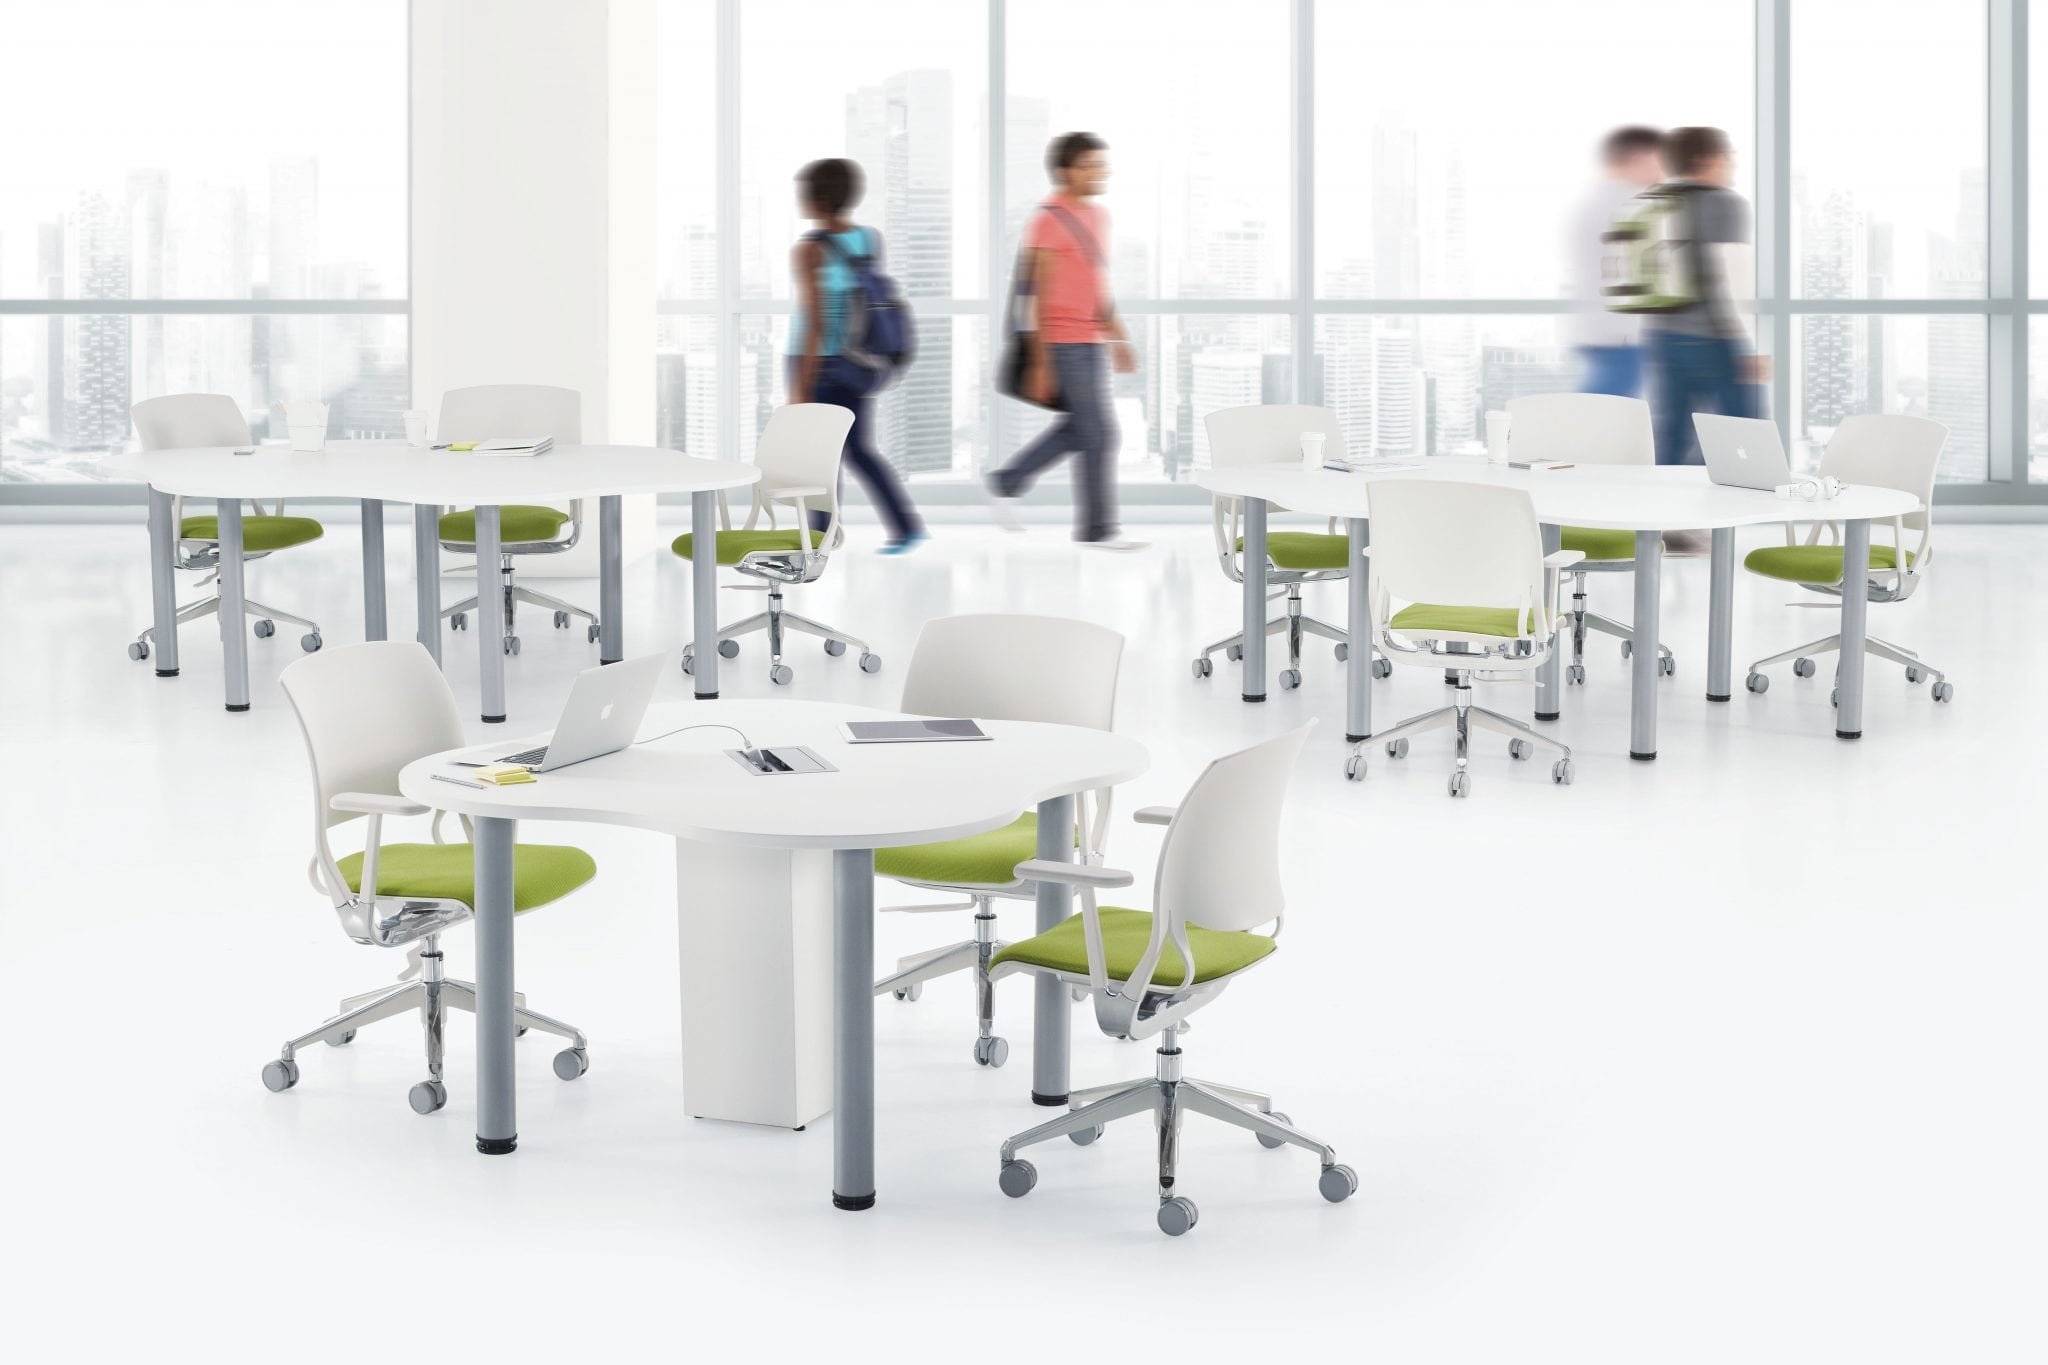 Zook Tables can be used for study groups, cafeterias, or meetings